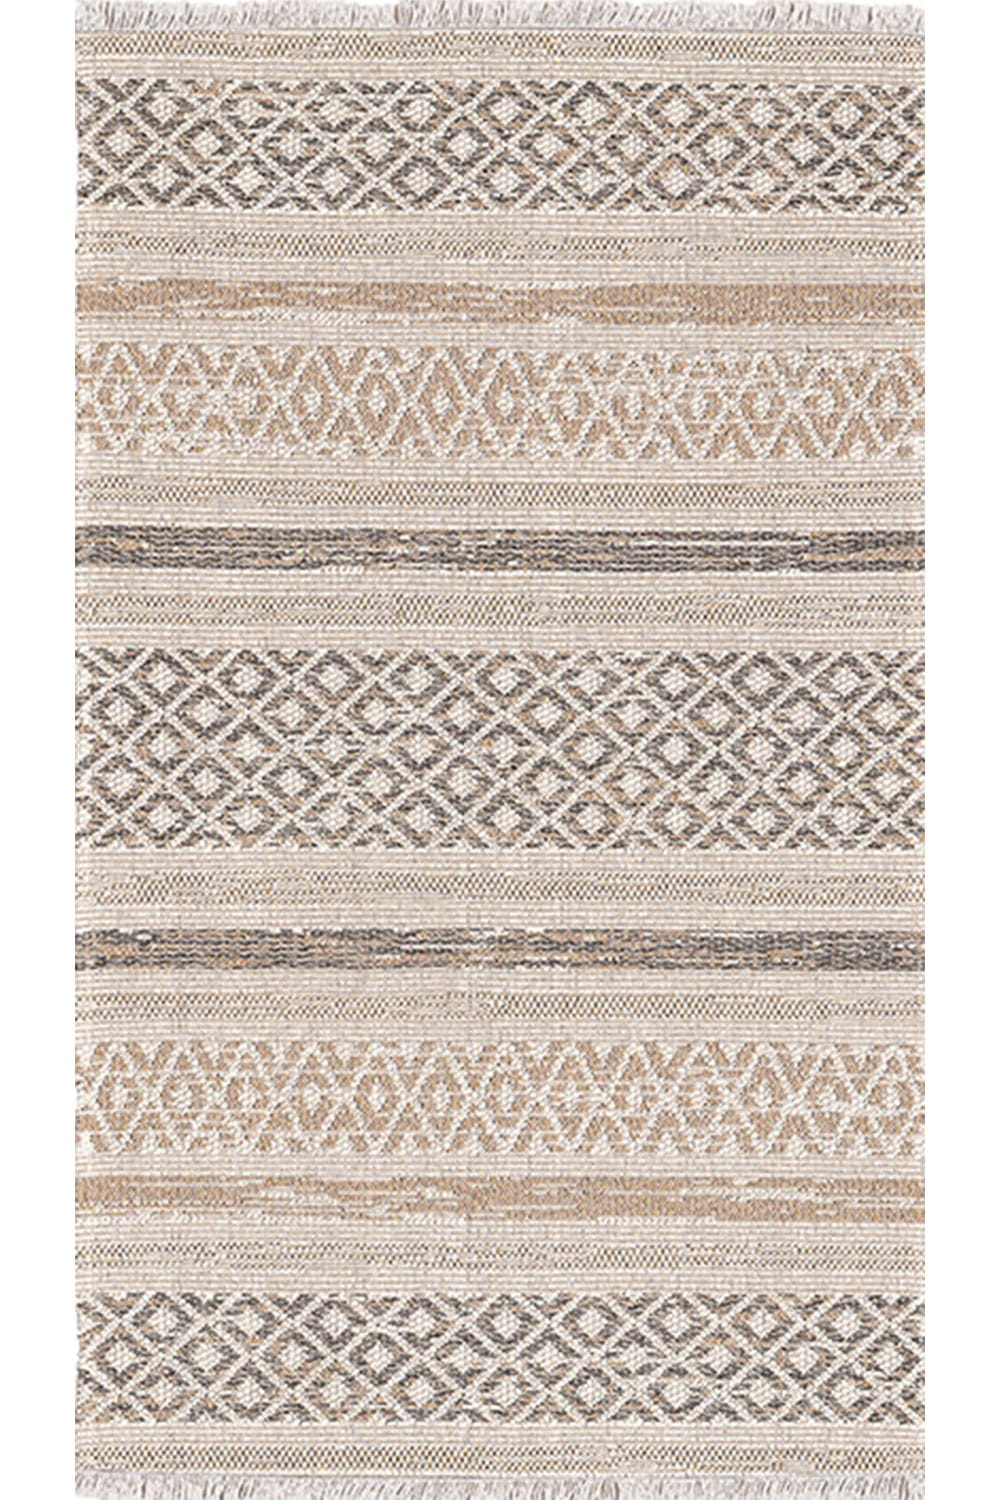 Χαλι Kasbah 3023/605 – Beige-Brown New Plan 70X220